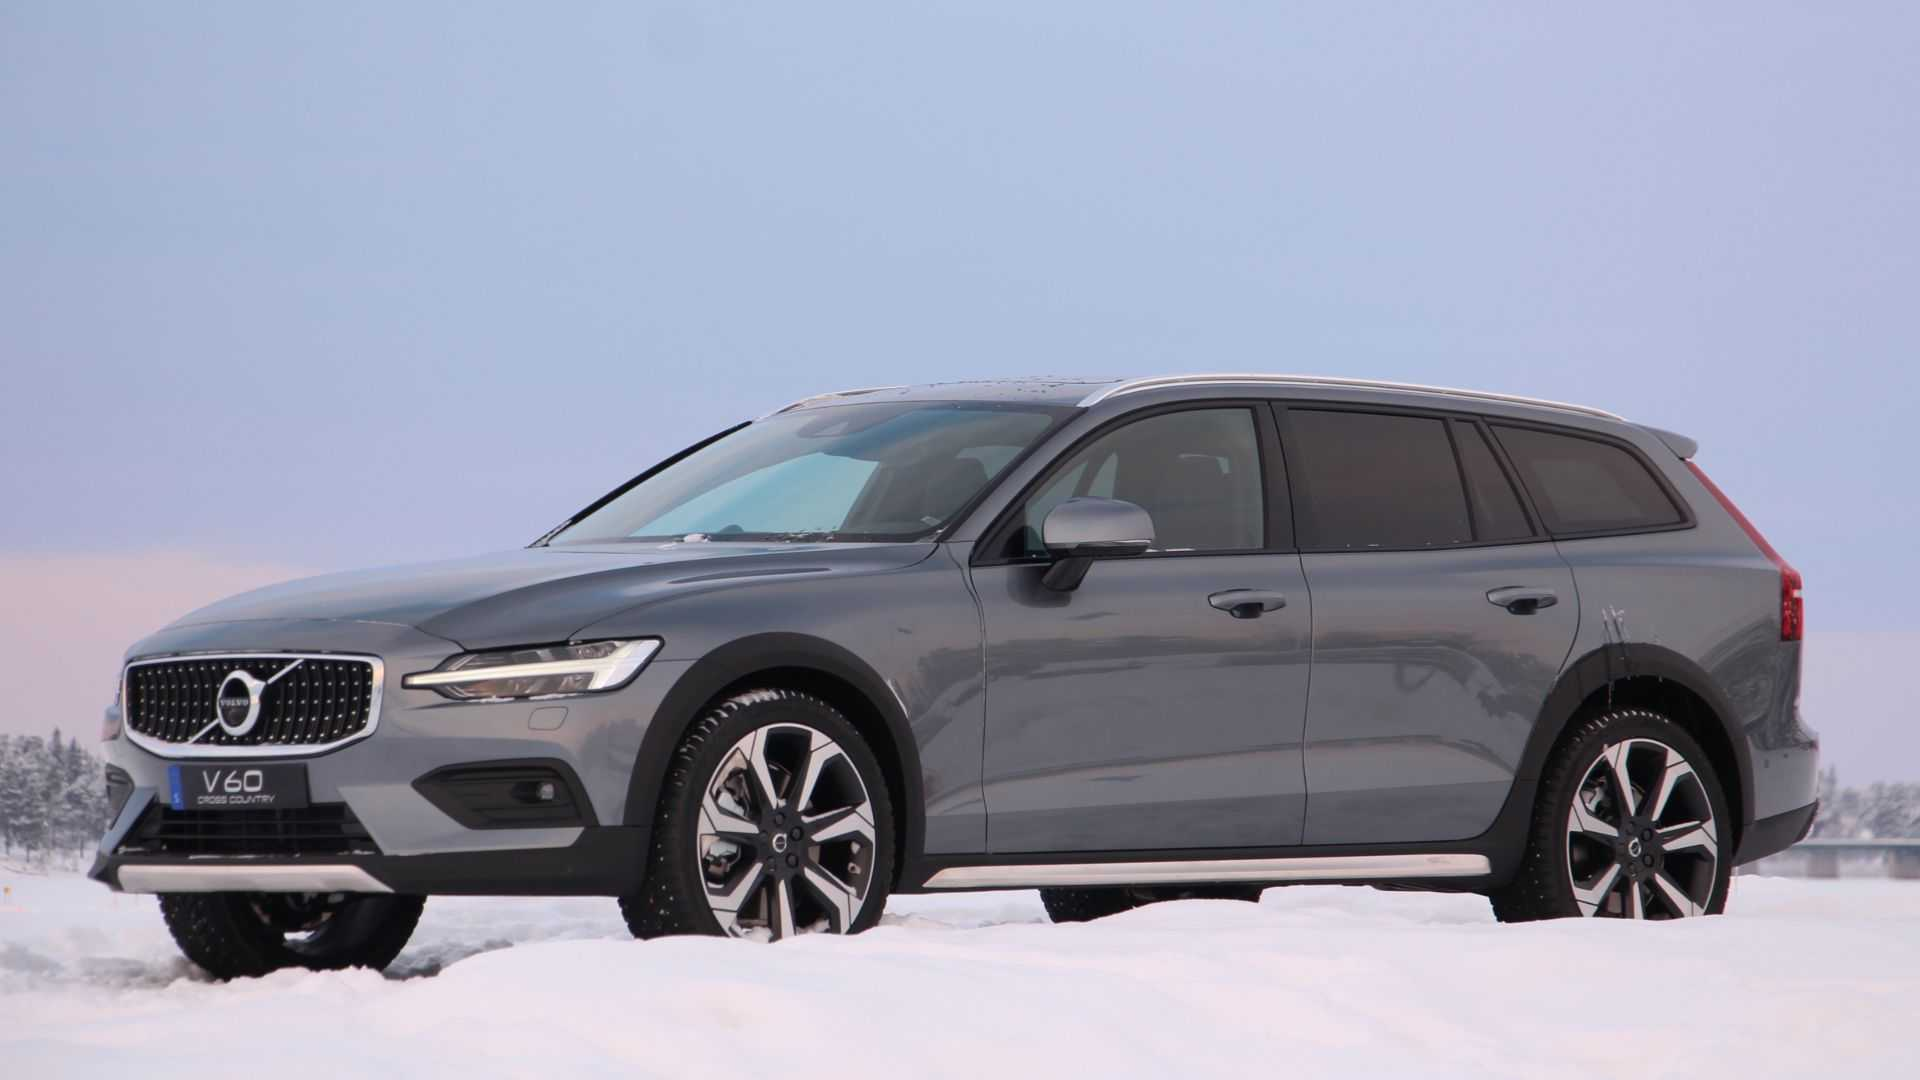 40 Best Review Volvo By 2020 Engine for Volvo By 2020